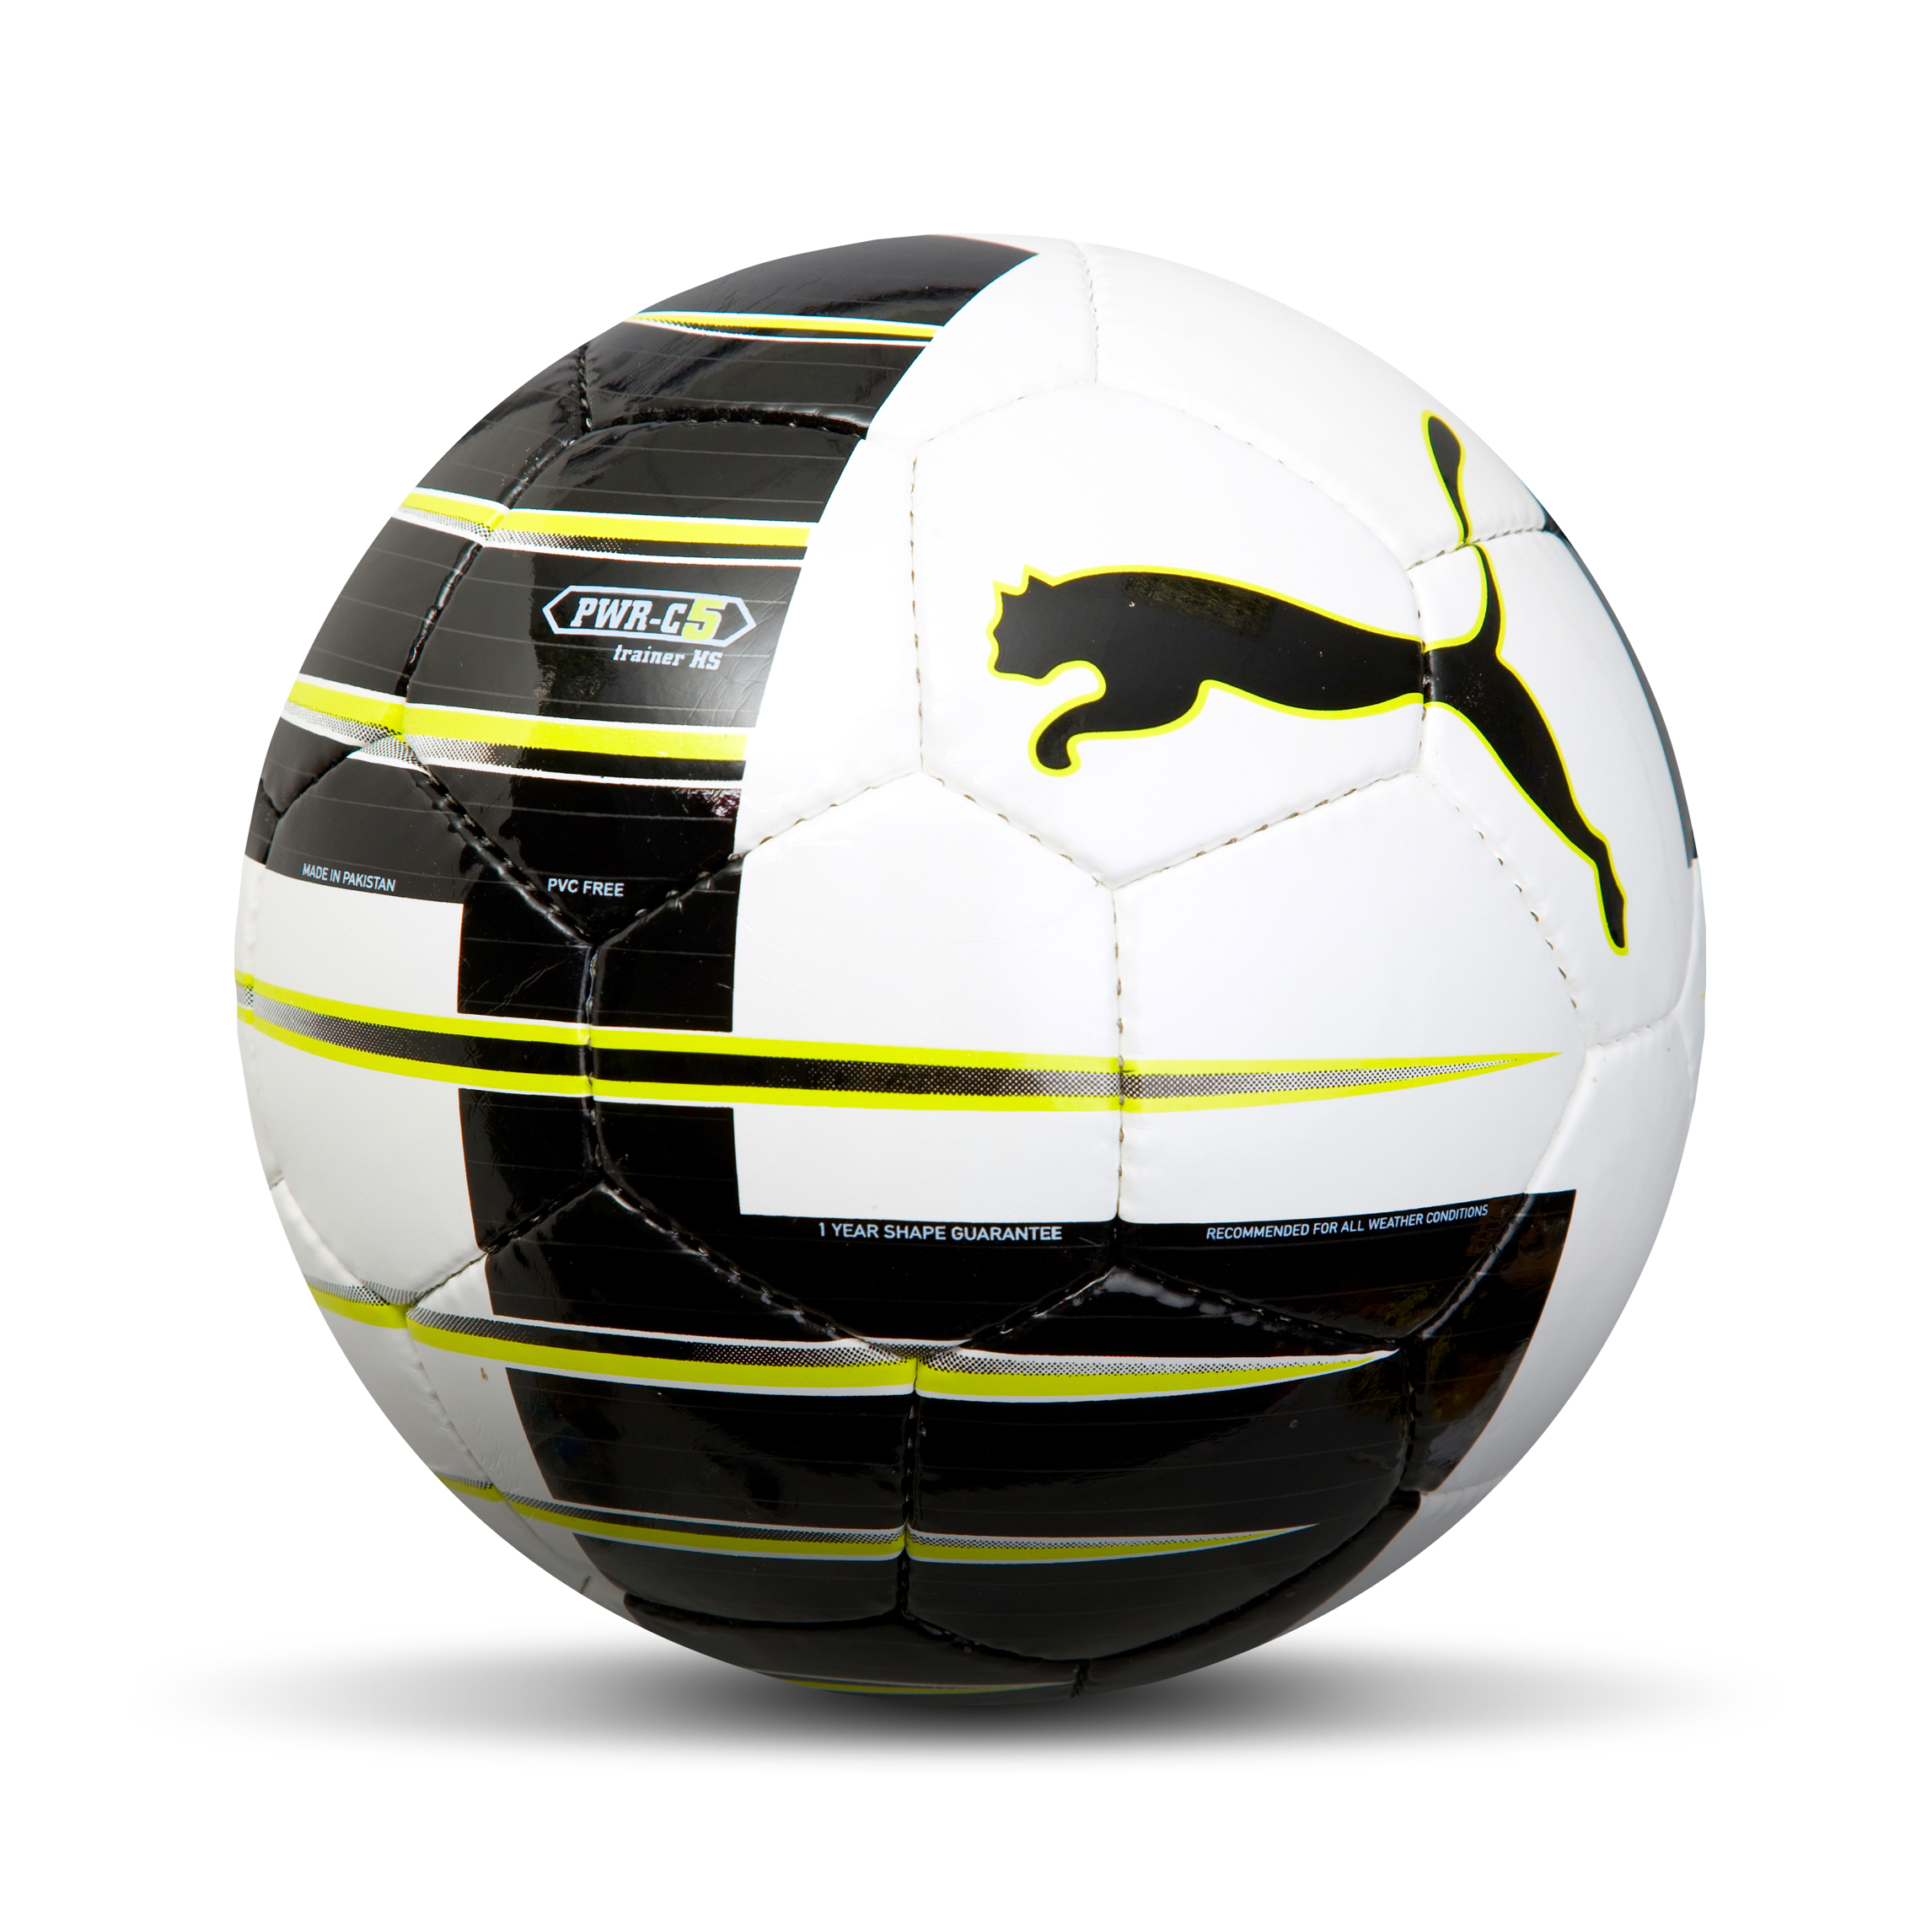 Puma Powercat 5.10 Football - White/Black/Lime - Size 5